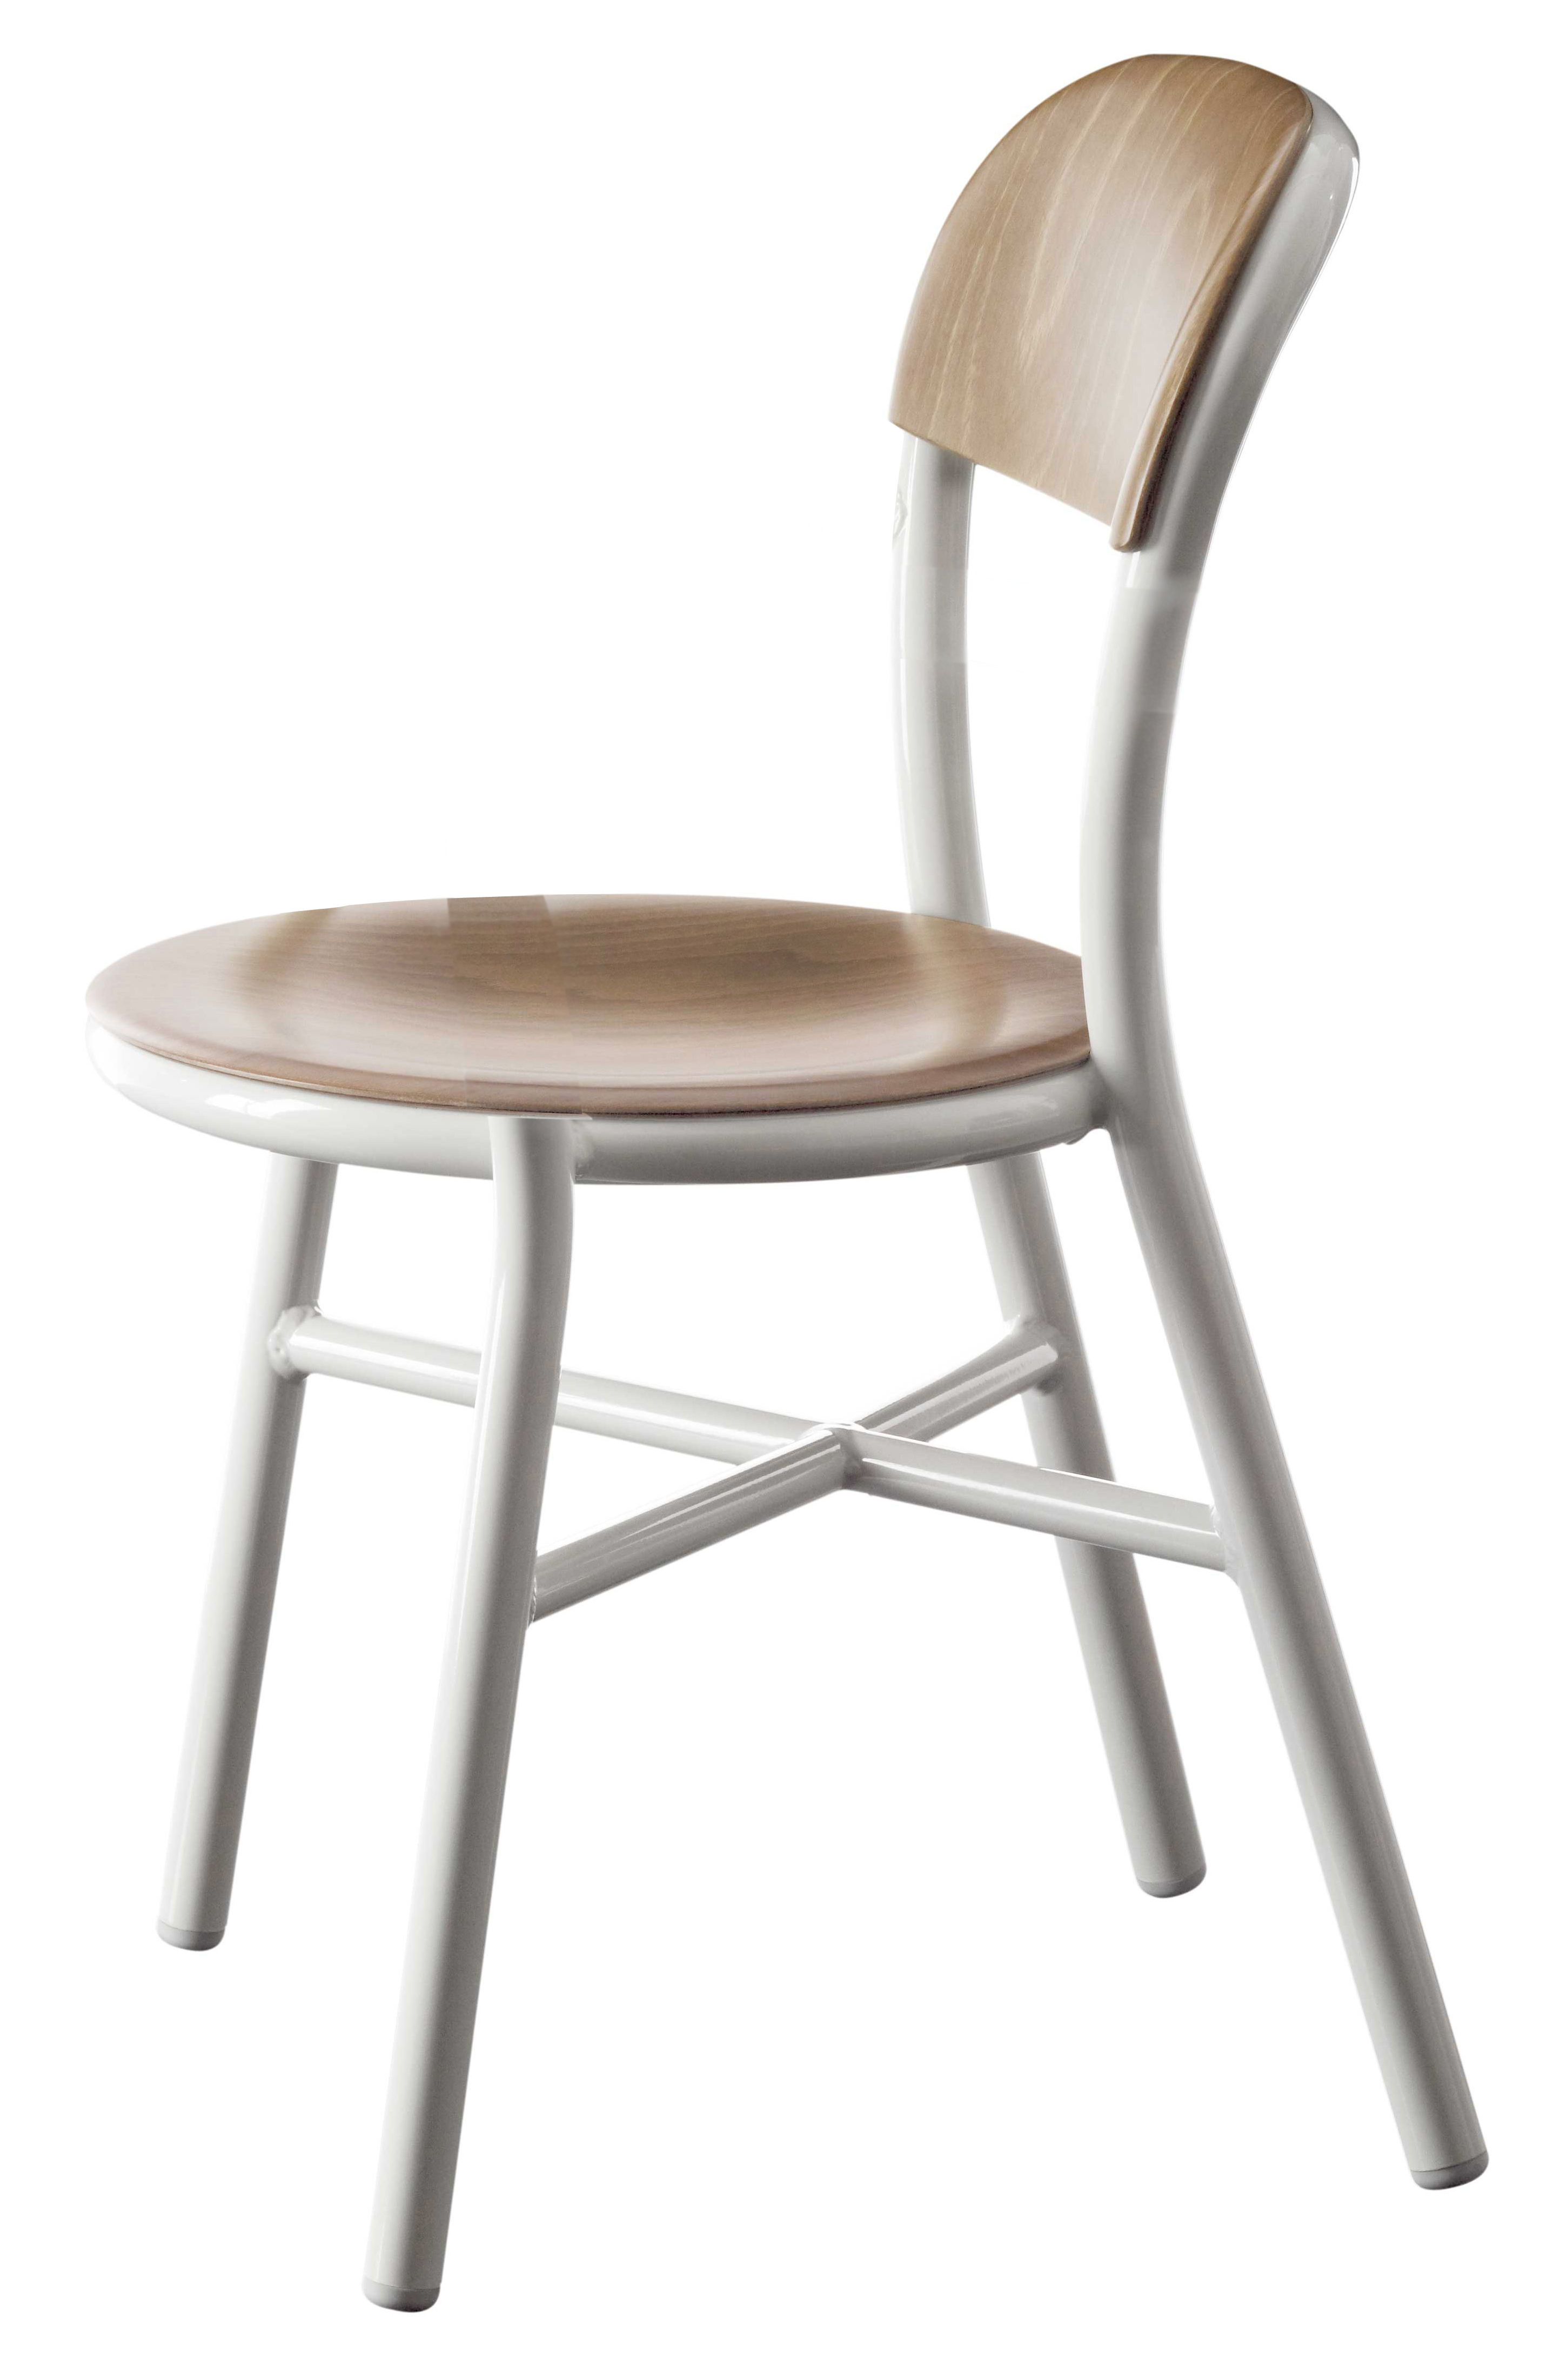 Furniture - Chairs - Pipe Stacking chair - Wood & metal by Magis - White / Natural beech - Beechwood plywood, Varnished aluminium